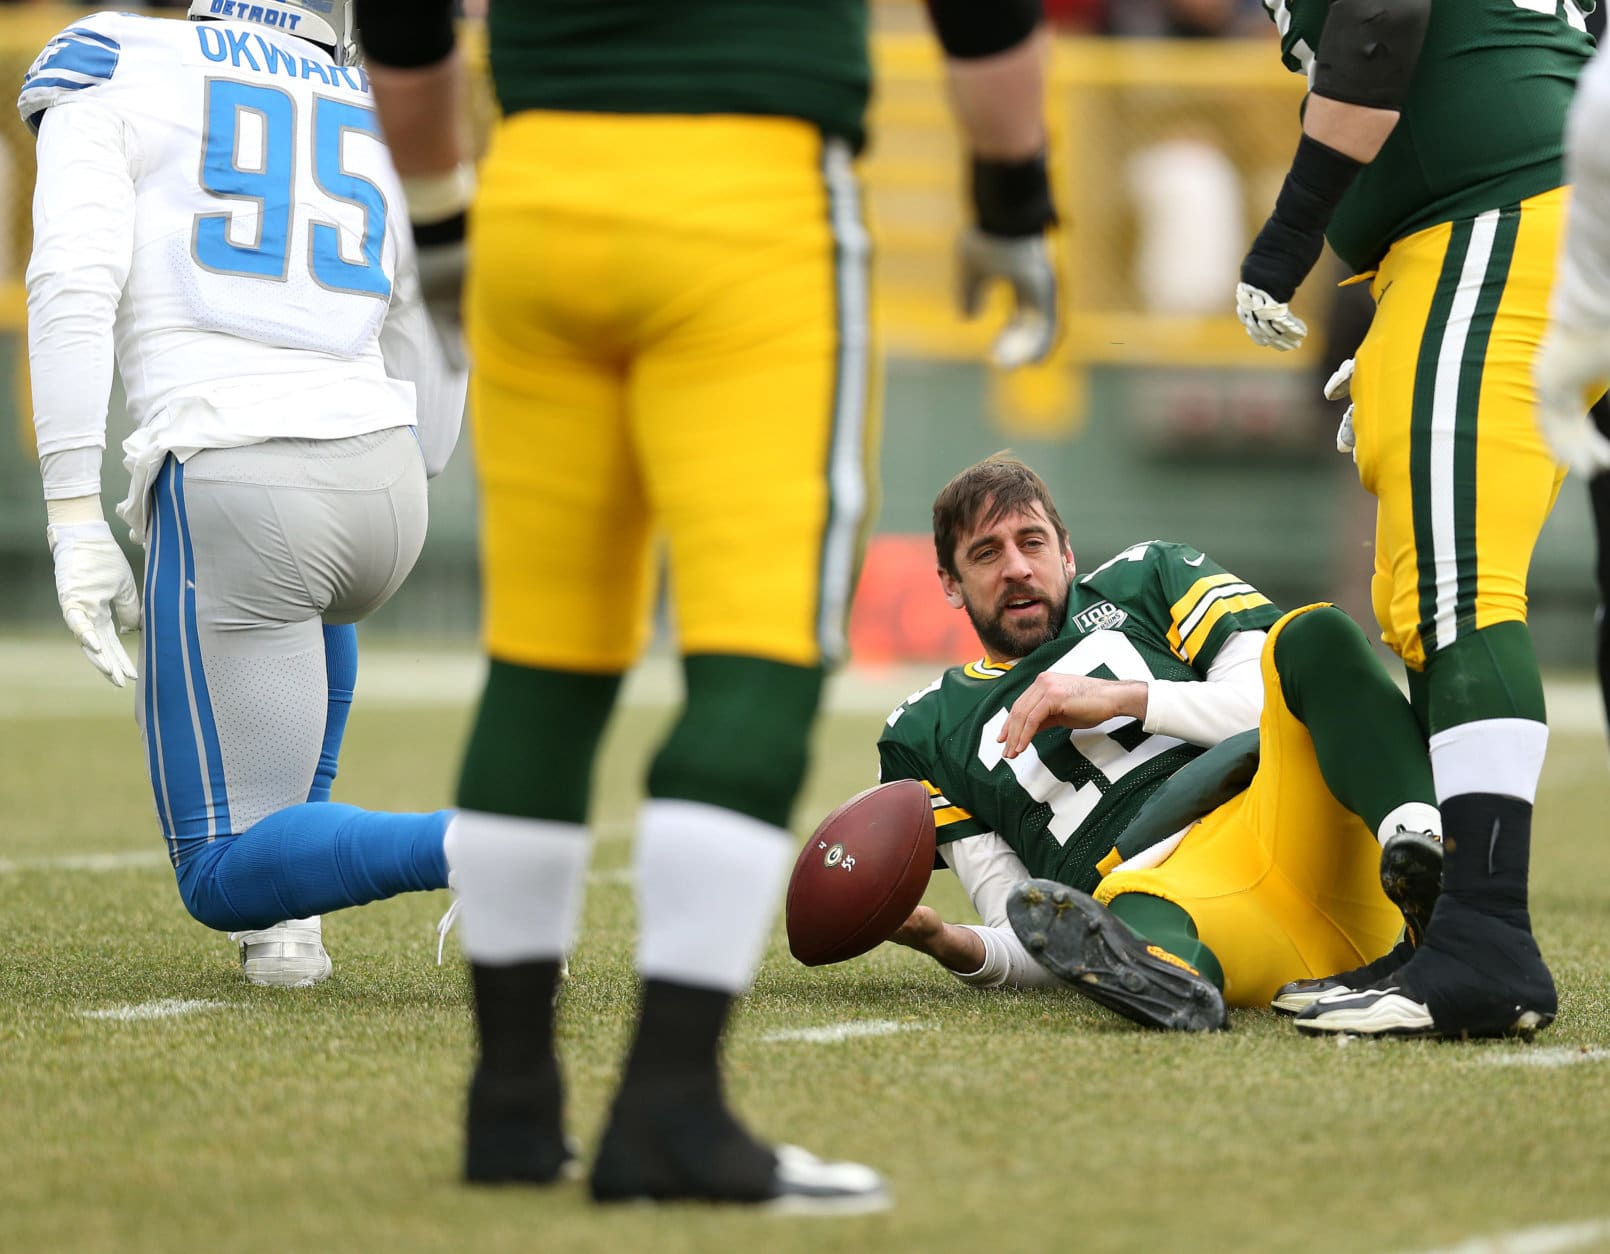 GREEN BAY, WISCONSIN - DECEMBER 30: Aaron Rodgers #12 of the Green Bay Packers lays on the ground after being sacked by Romeo Okwara #95 of the Detroit Lions during the first half of a game at Lambeau Field on December 30, 2018 in Green Bay, Wisconsin. (Photo by Dylan Buell/Getty Images)